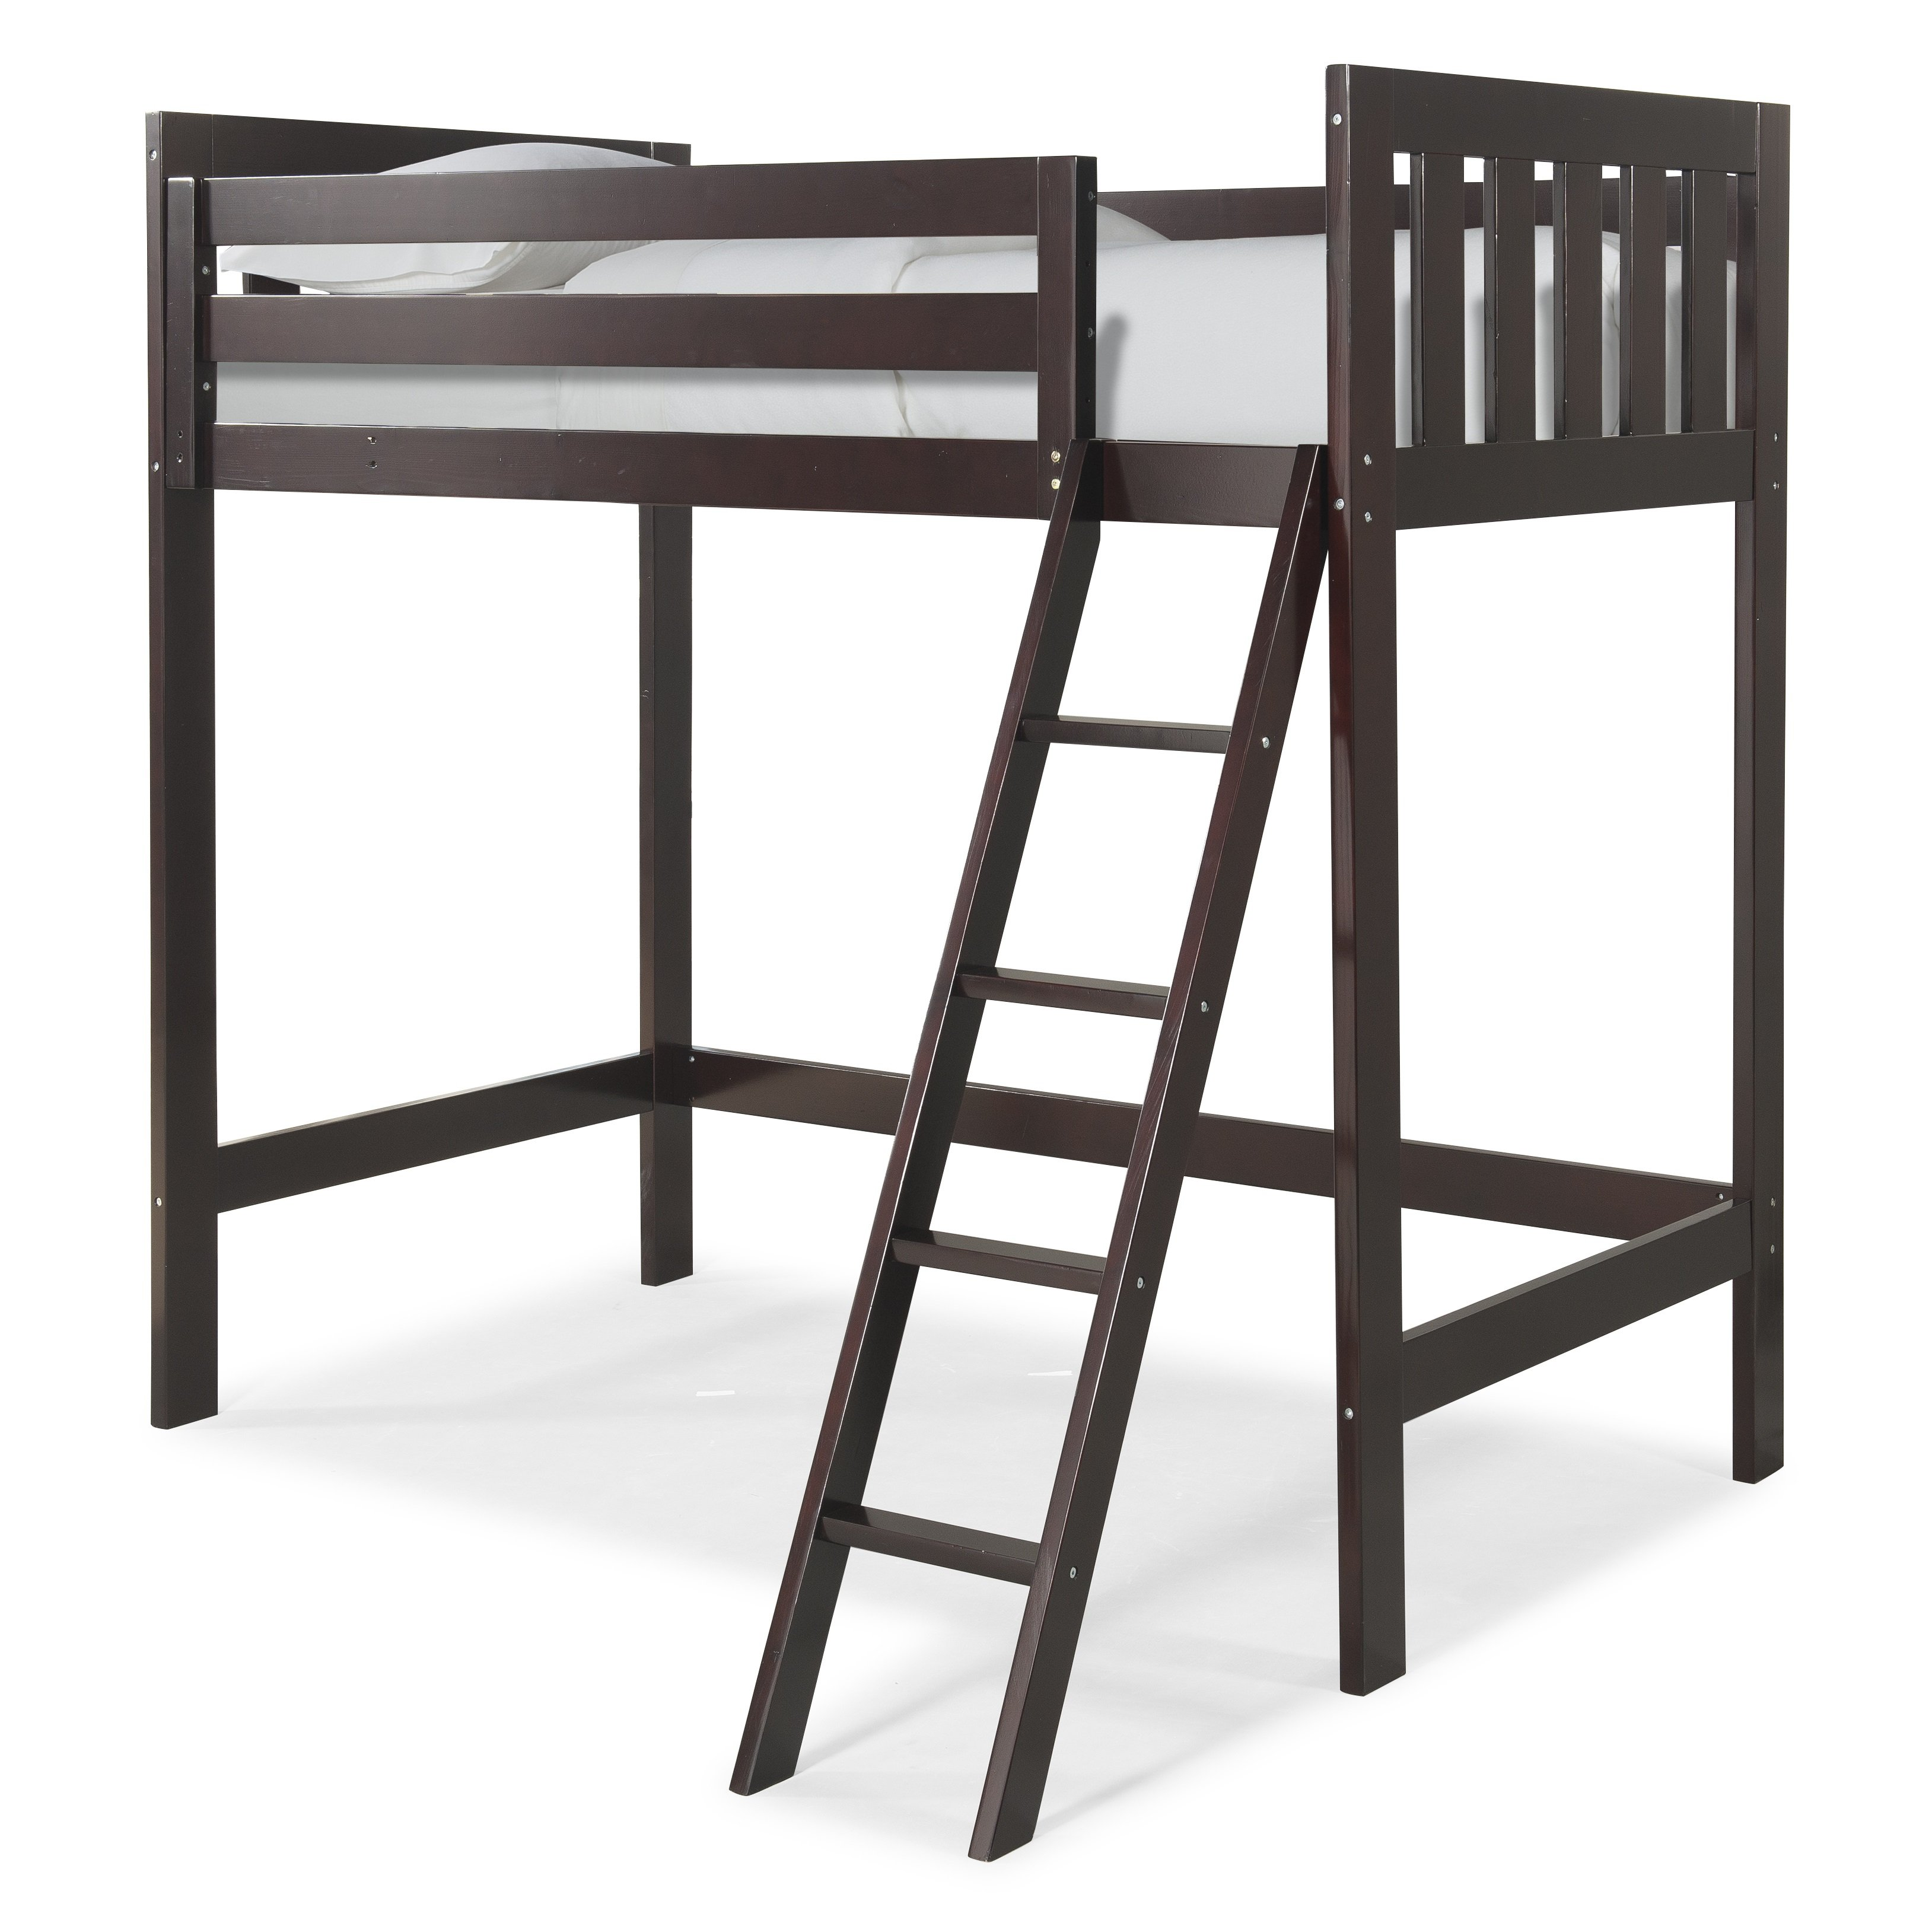 Snazzy Canwood Furniture | Chic Canwood Loft Bed